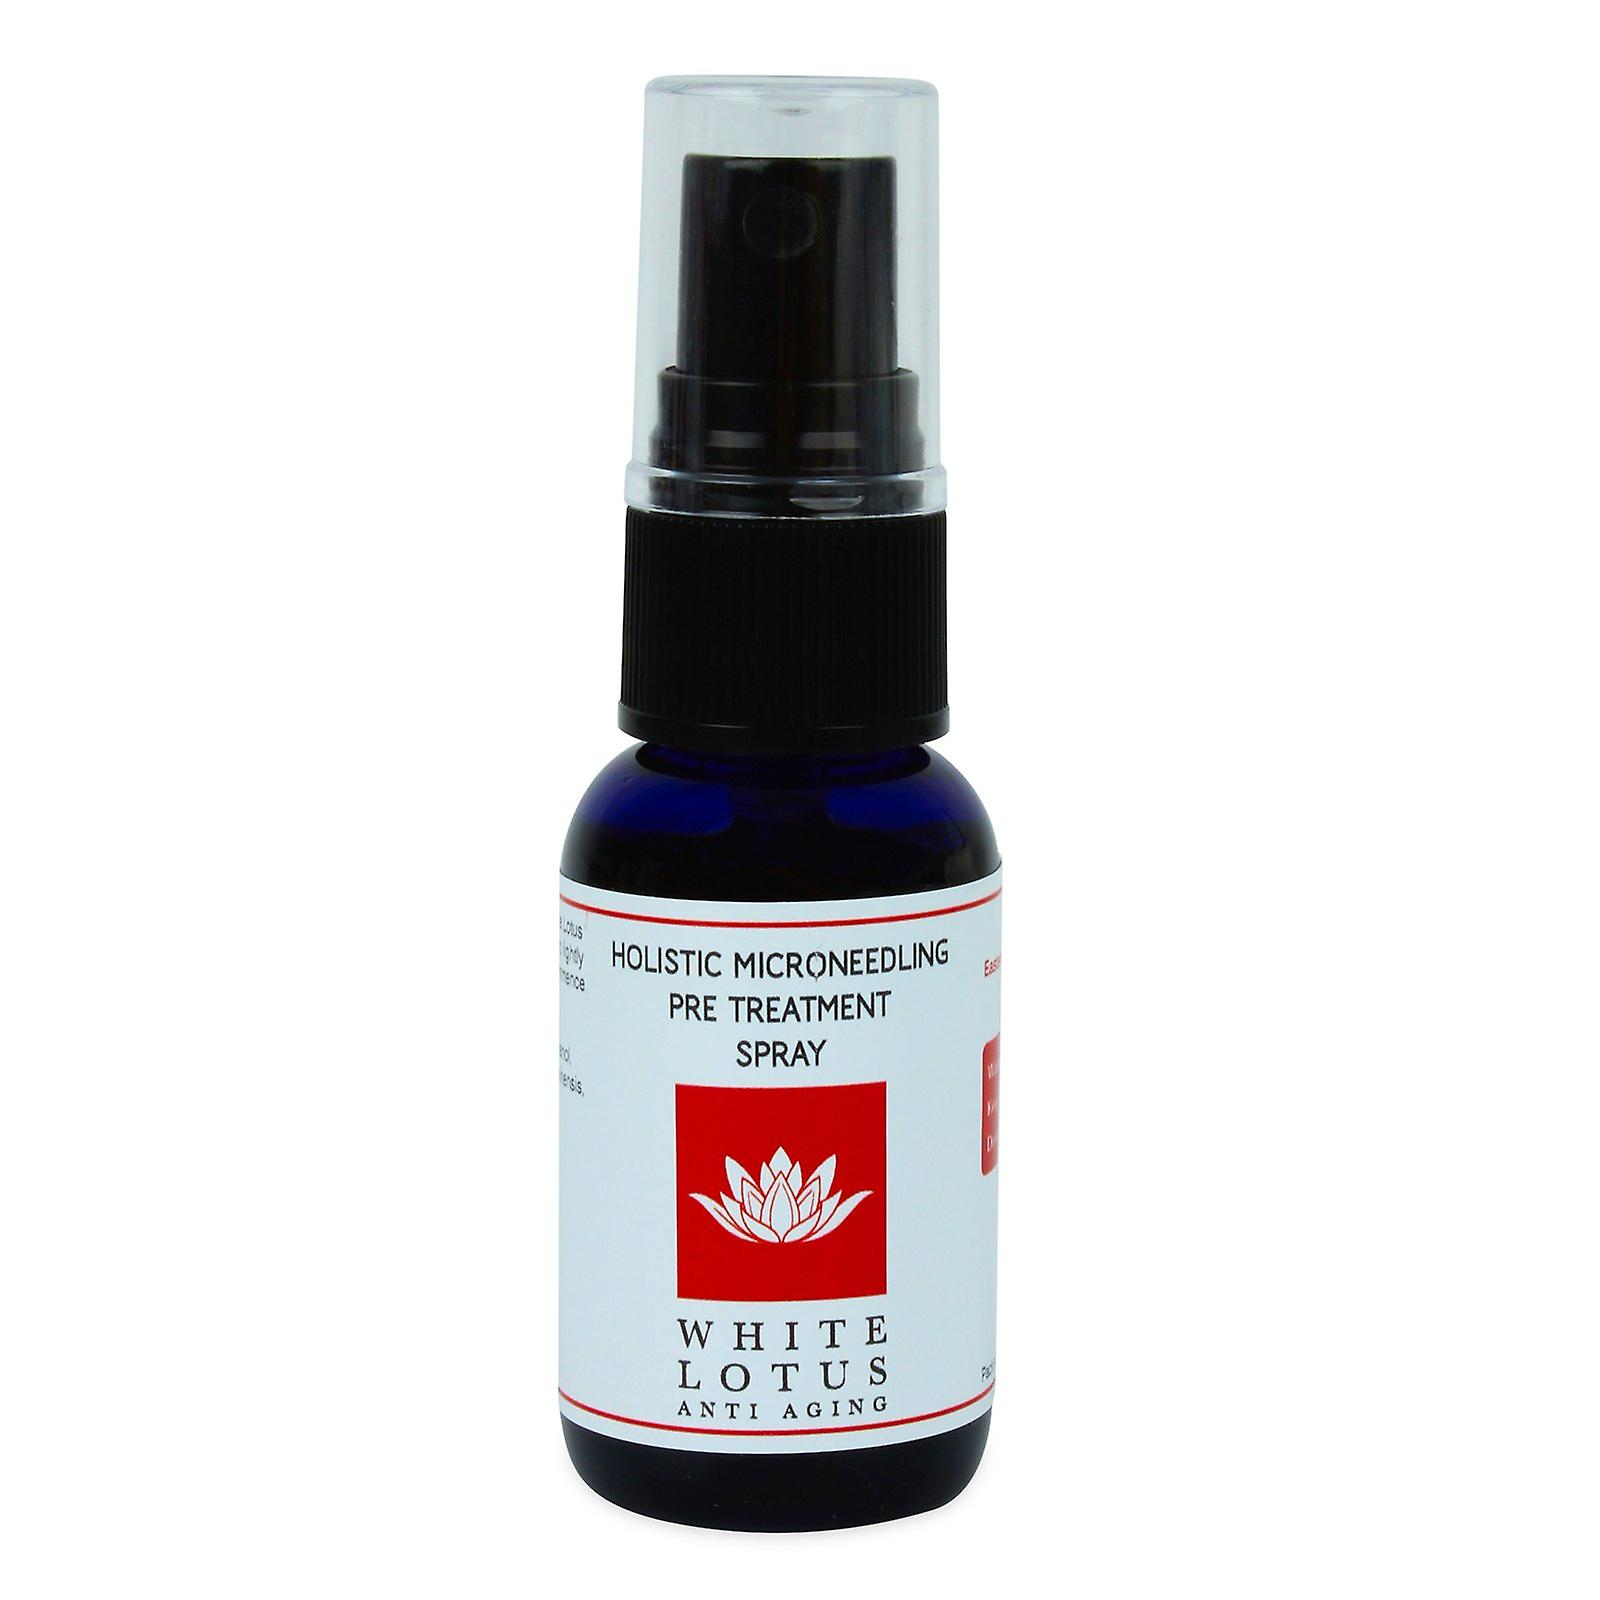 Holistic microneedling pre treatment spray 30ml